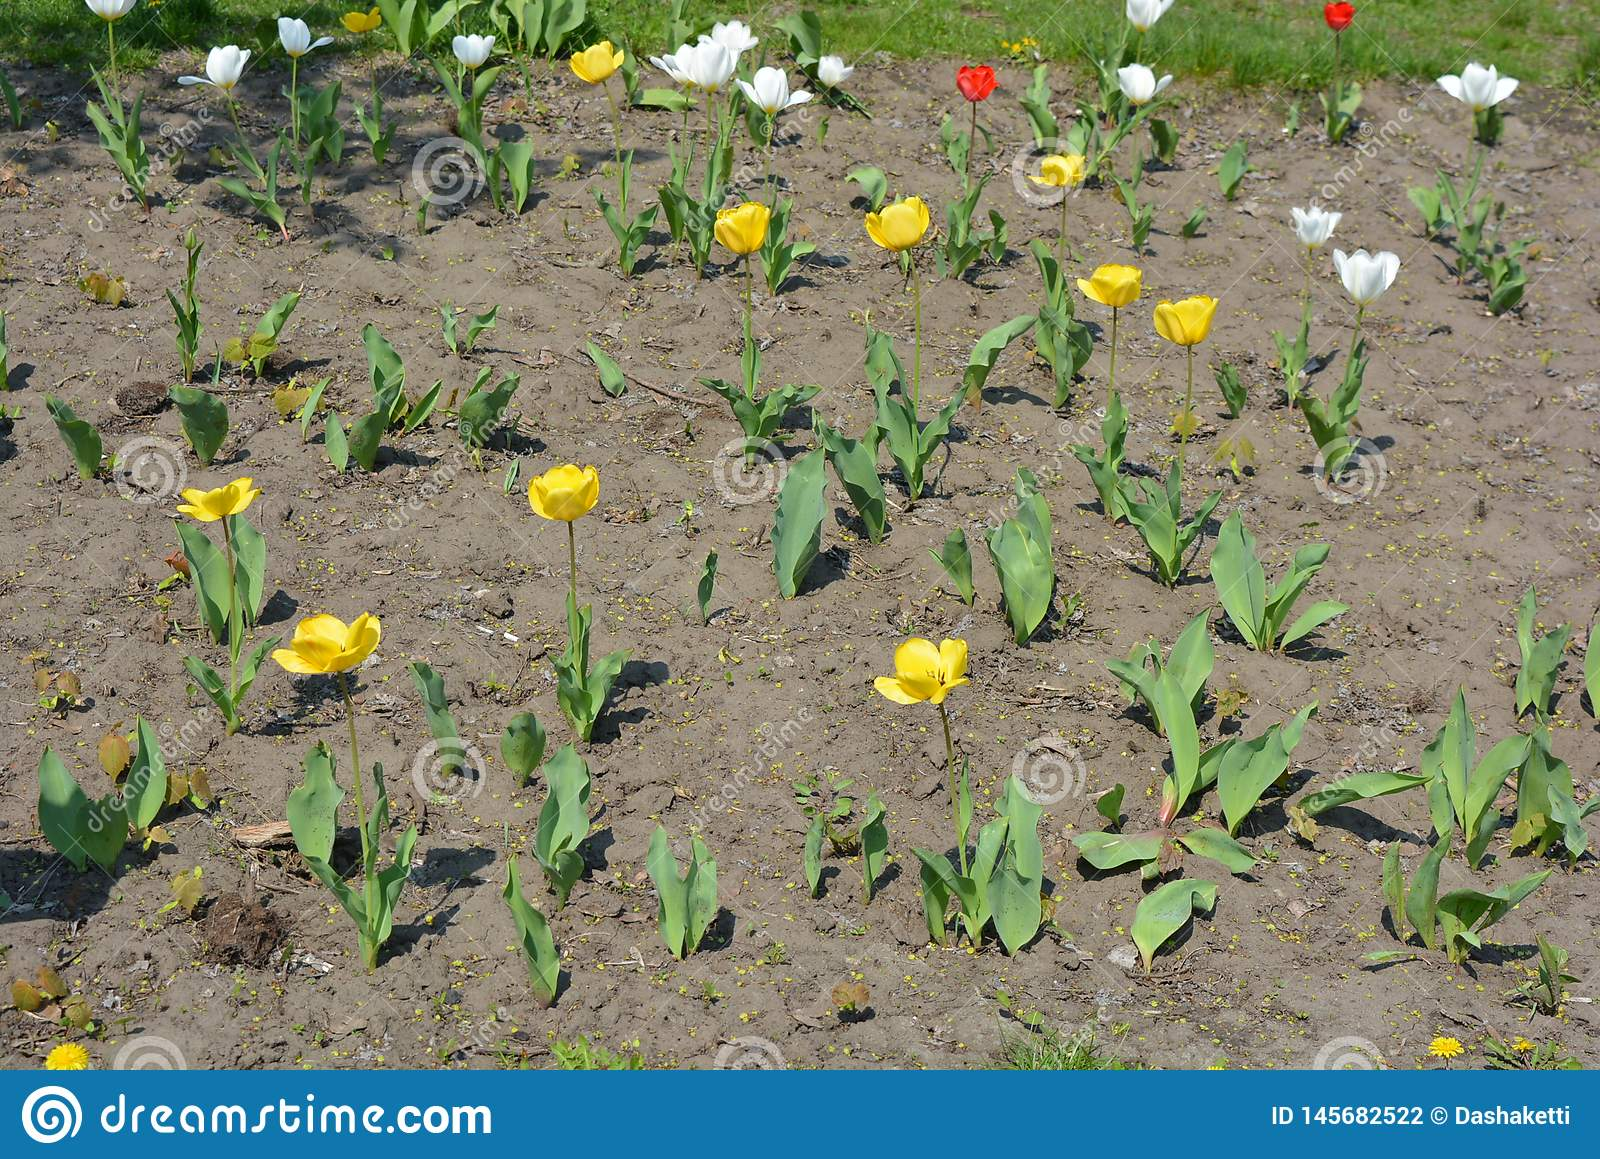 Rarely Planted Bushes Of Spring Flowers Yellow Tulip Buds On A